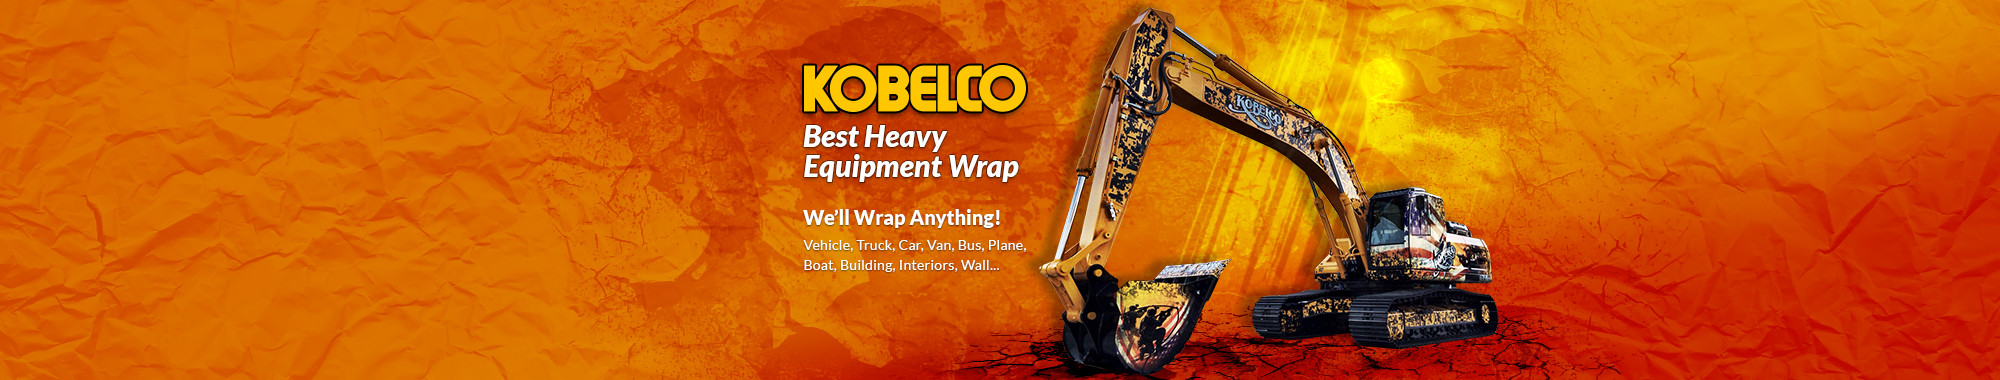 Kobelco - Best Heavy Equipment Wrap in las vegas